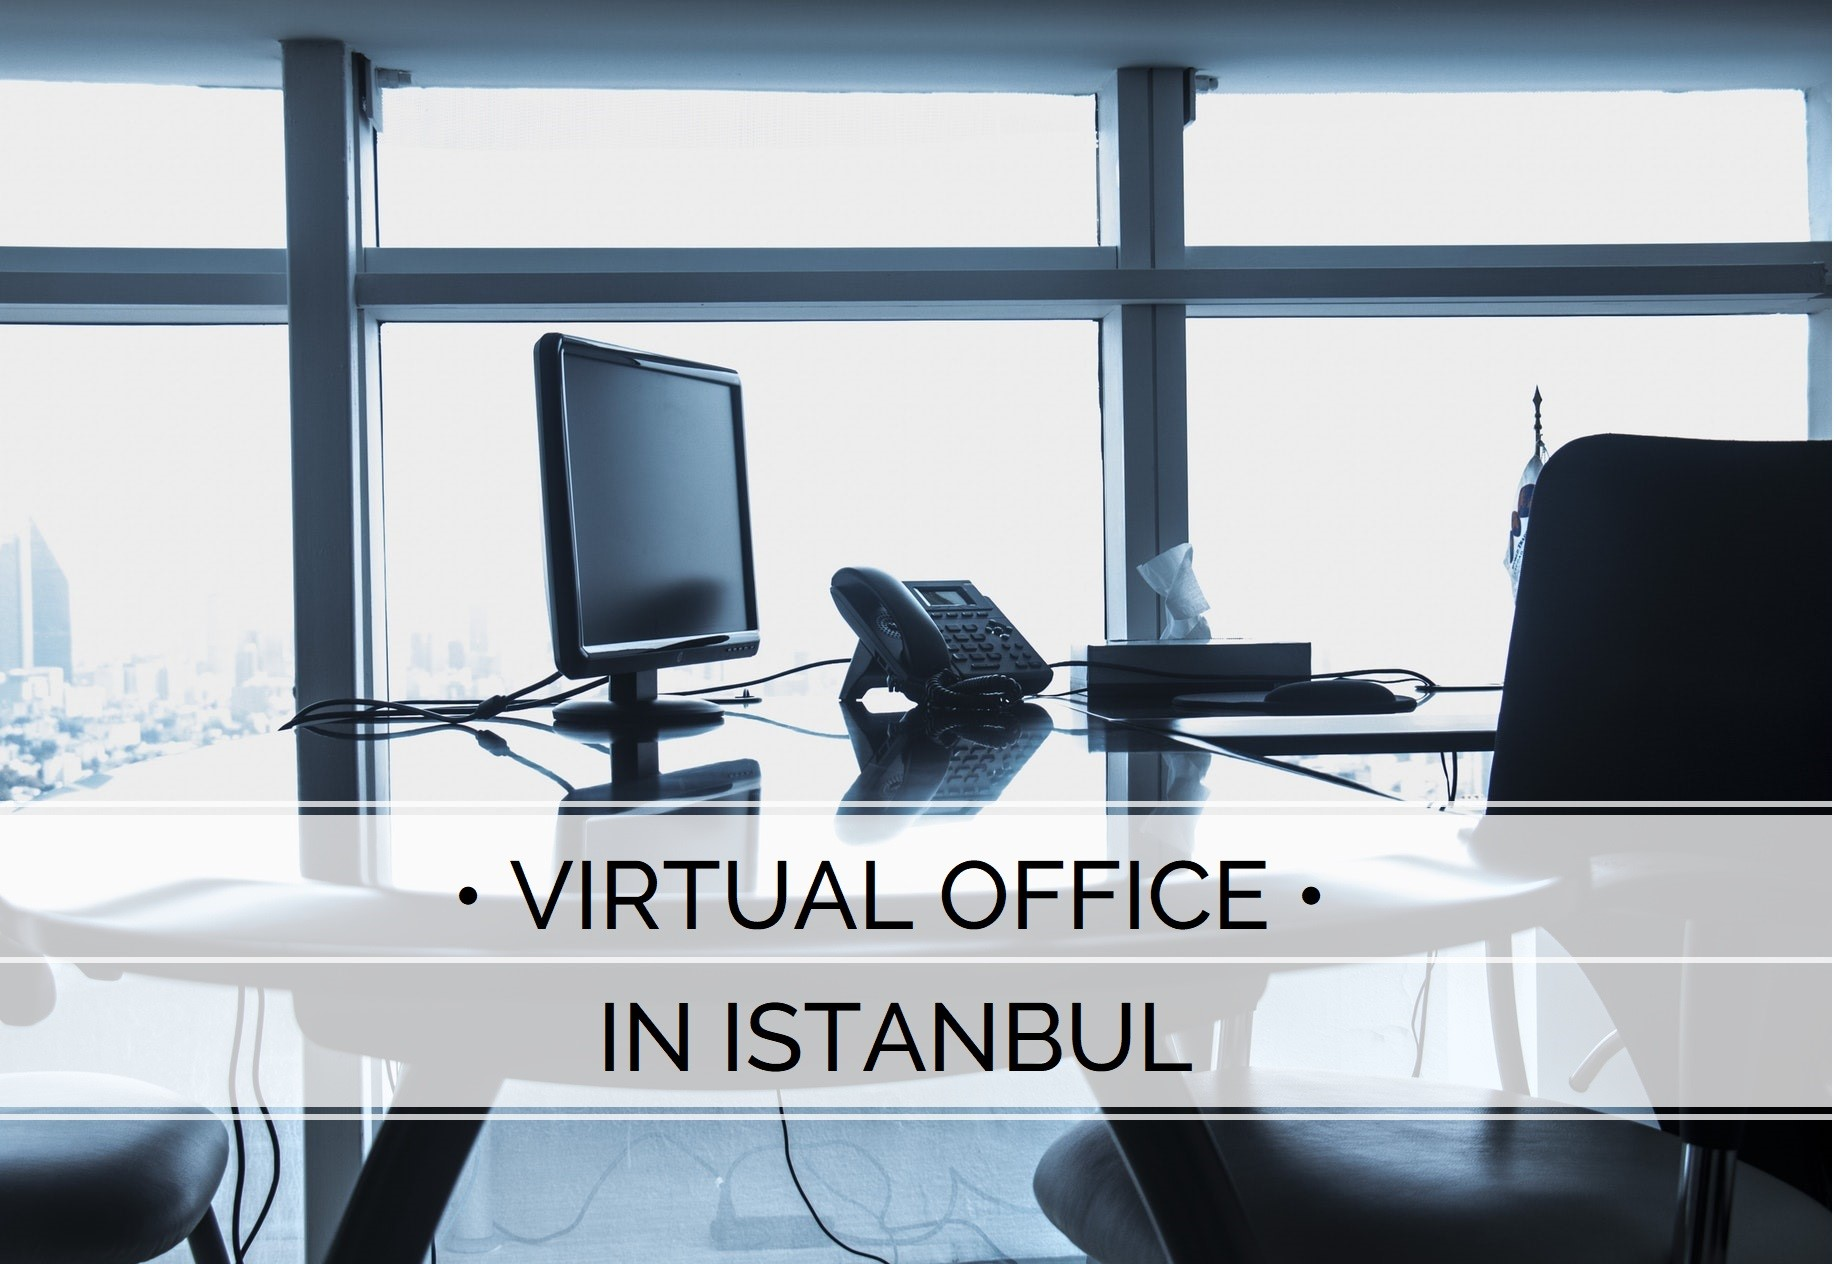 Virtual Office in Istanbul